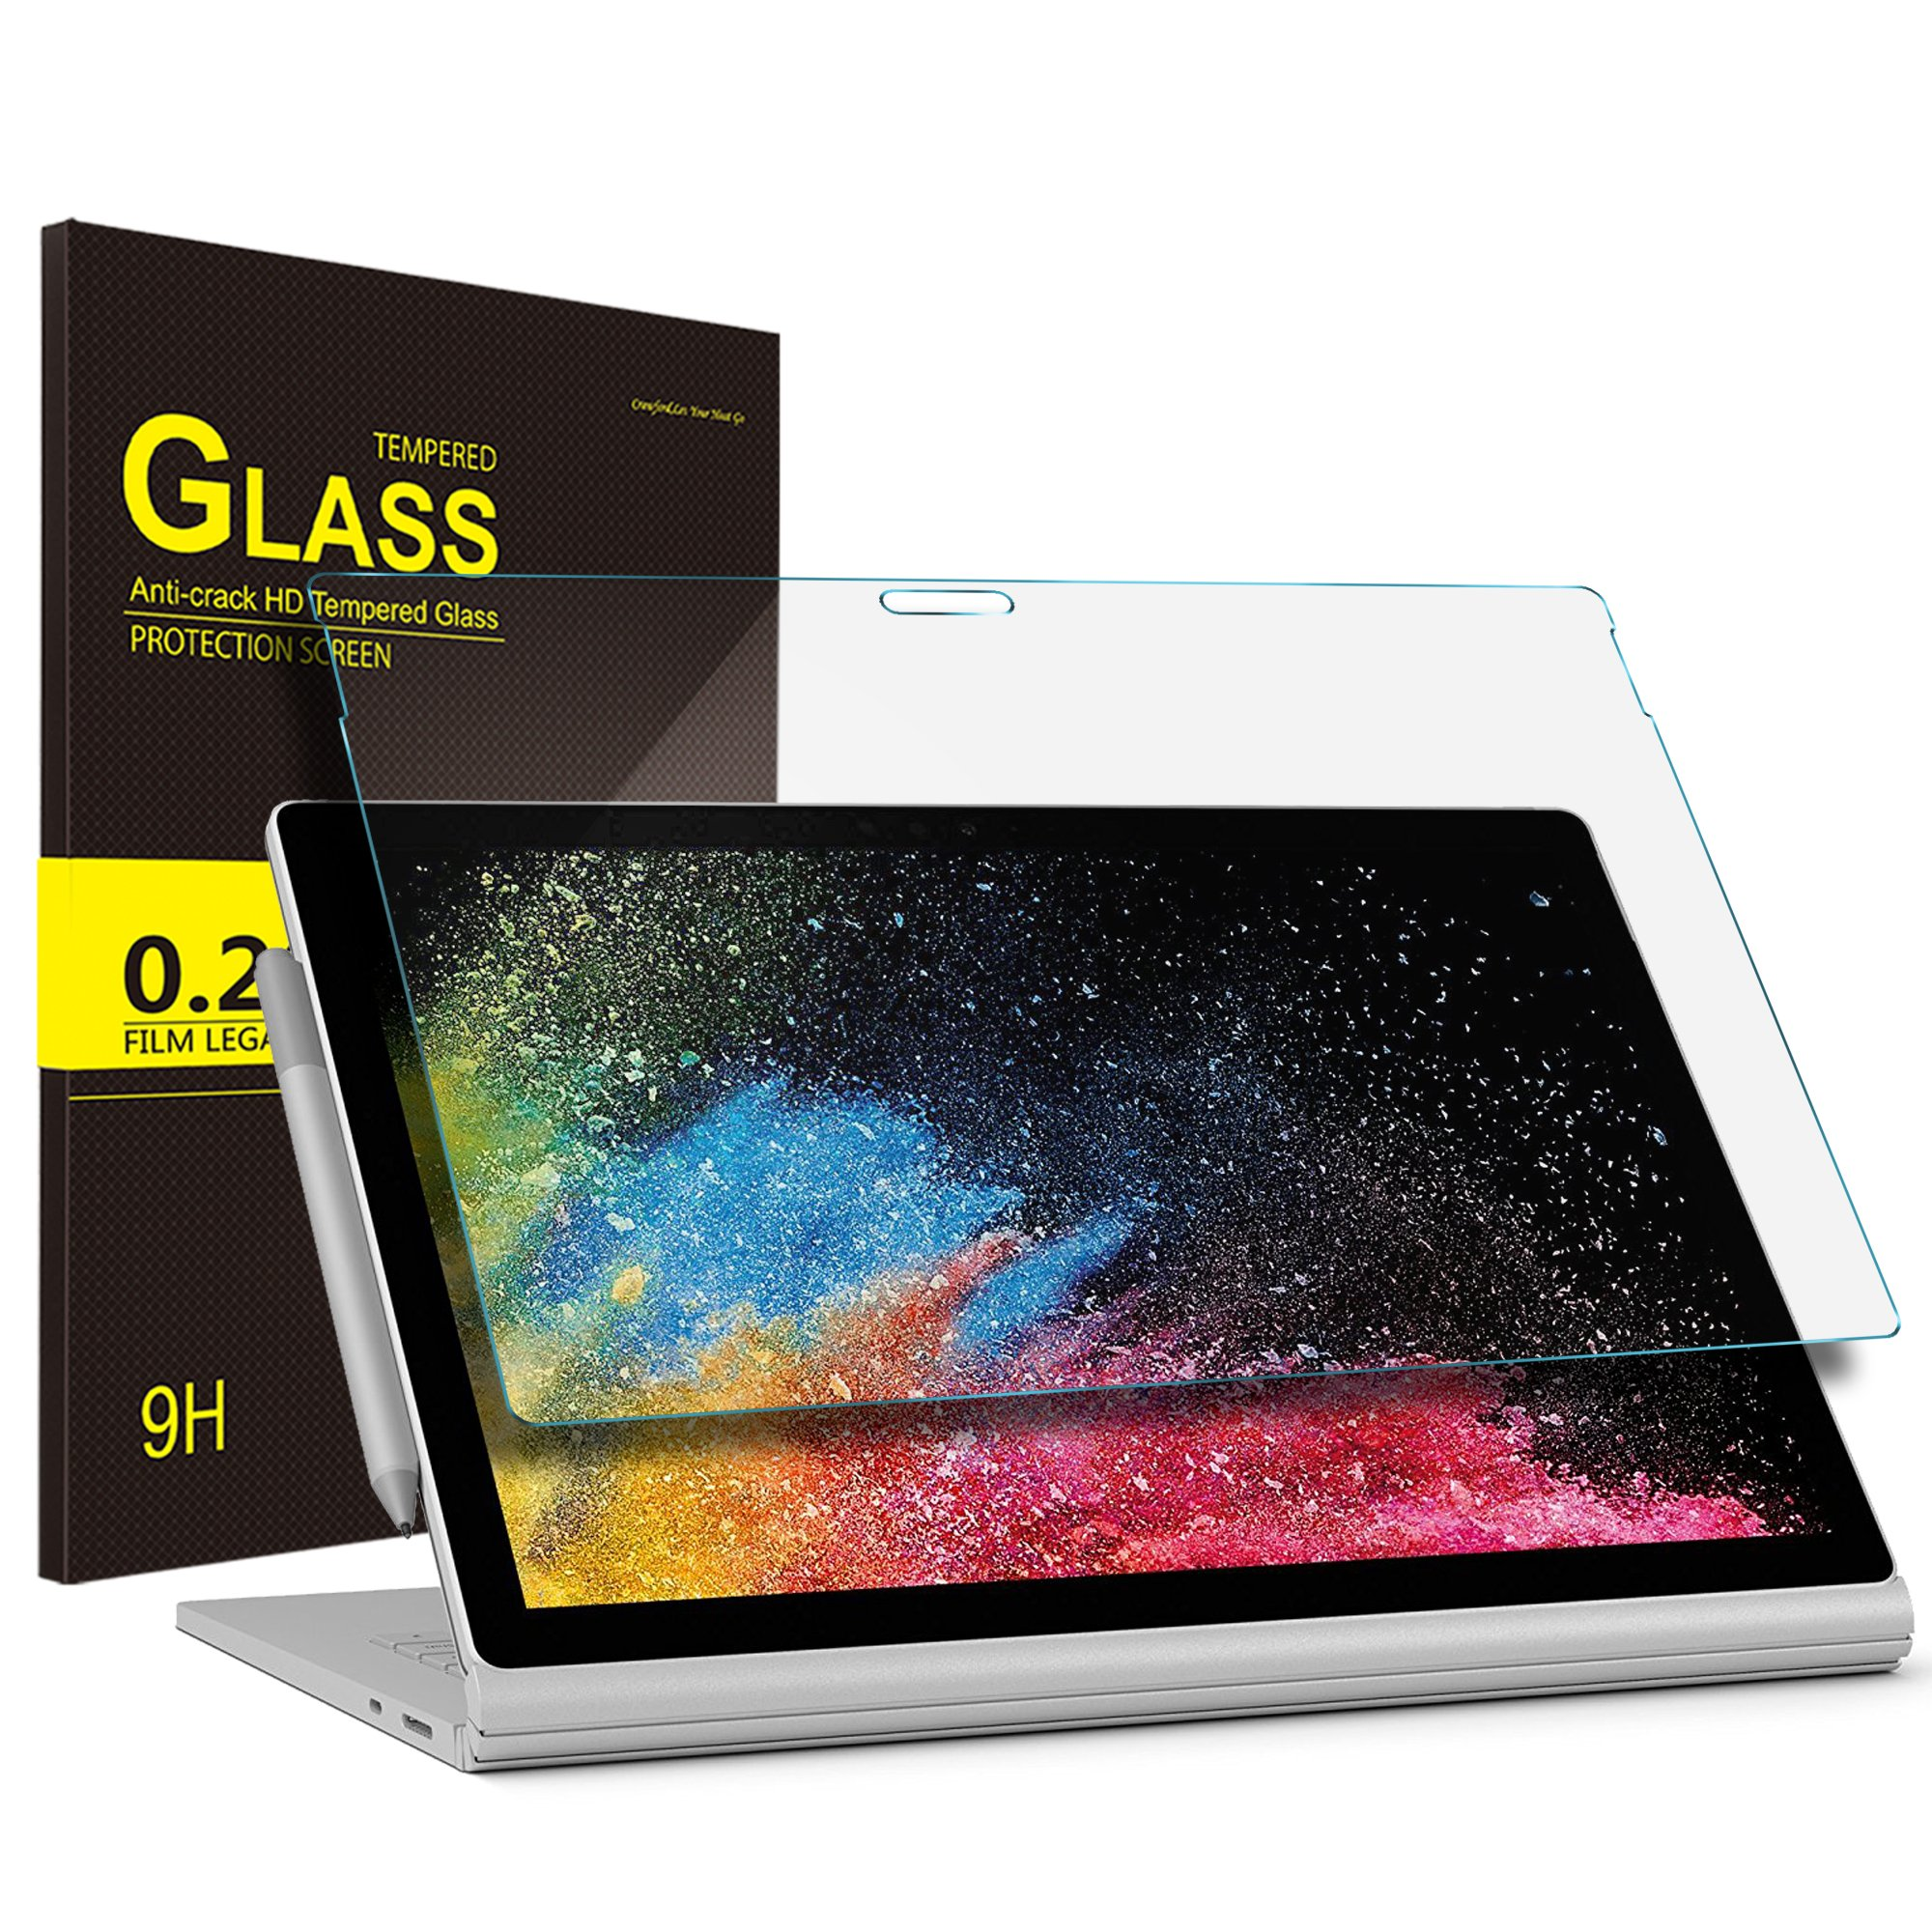 IVSO Surface book 2 Screen Protector, Premium Tempered-Glass Screen Protector For Microsoft Surface Book 2 13.5-Inch PixelSense Display Notebook Tablet (Tempered-Glass - 1 Pack)